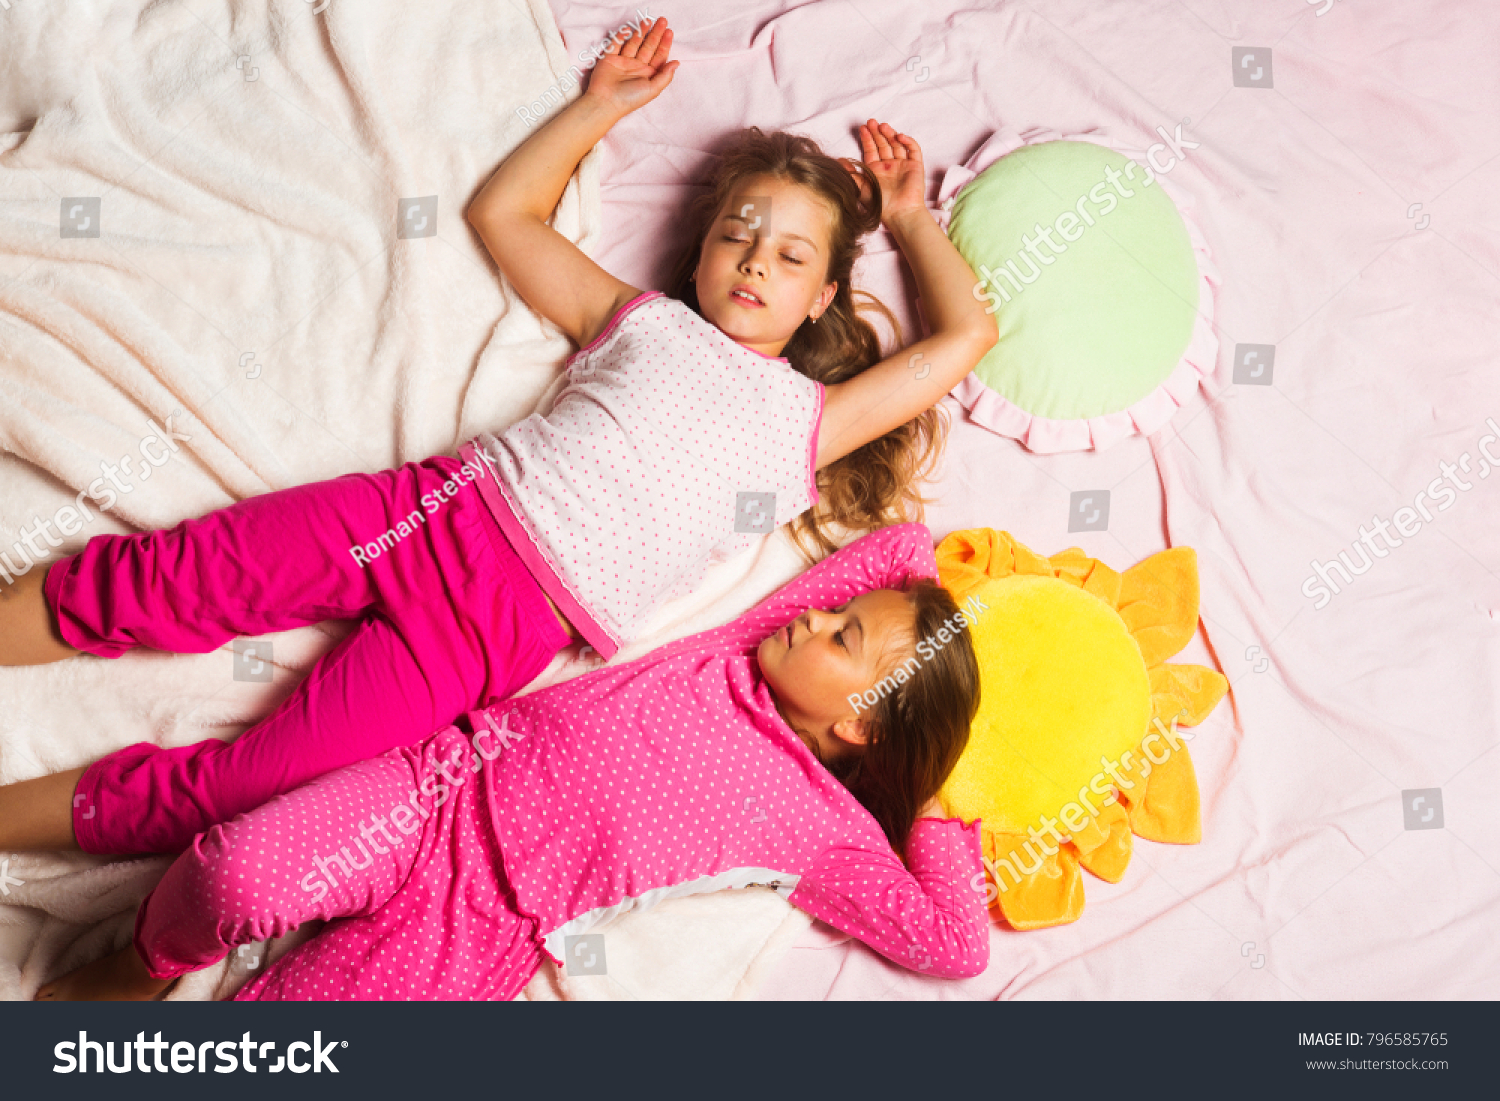 71895055c6 Children with sleepy faces lie close on light pink blanket background.  Schoolgirls having pajama party